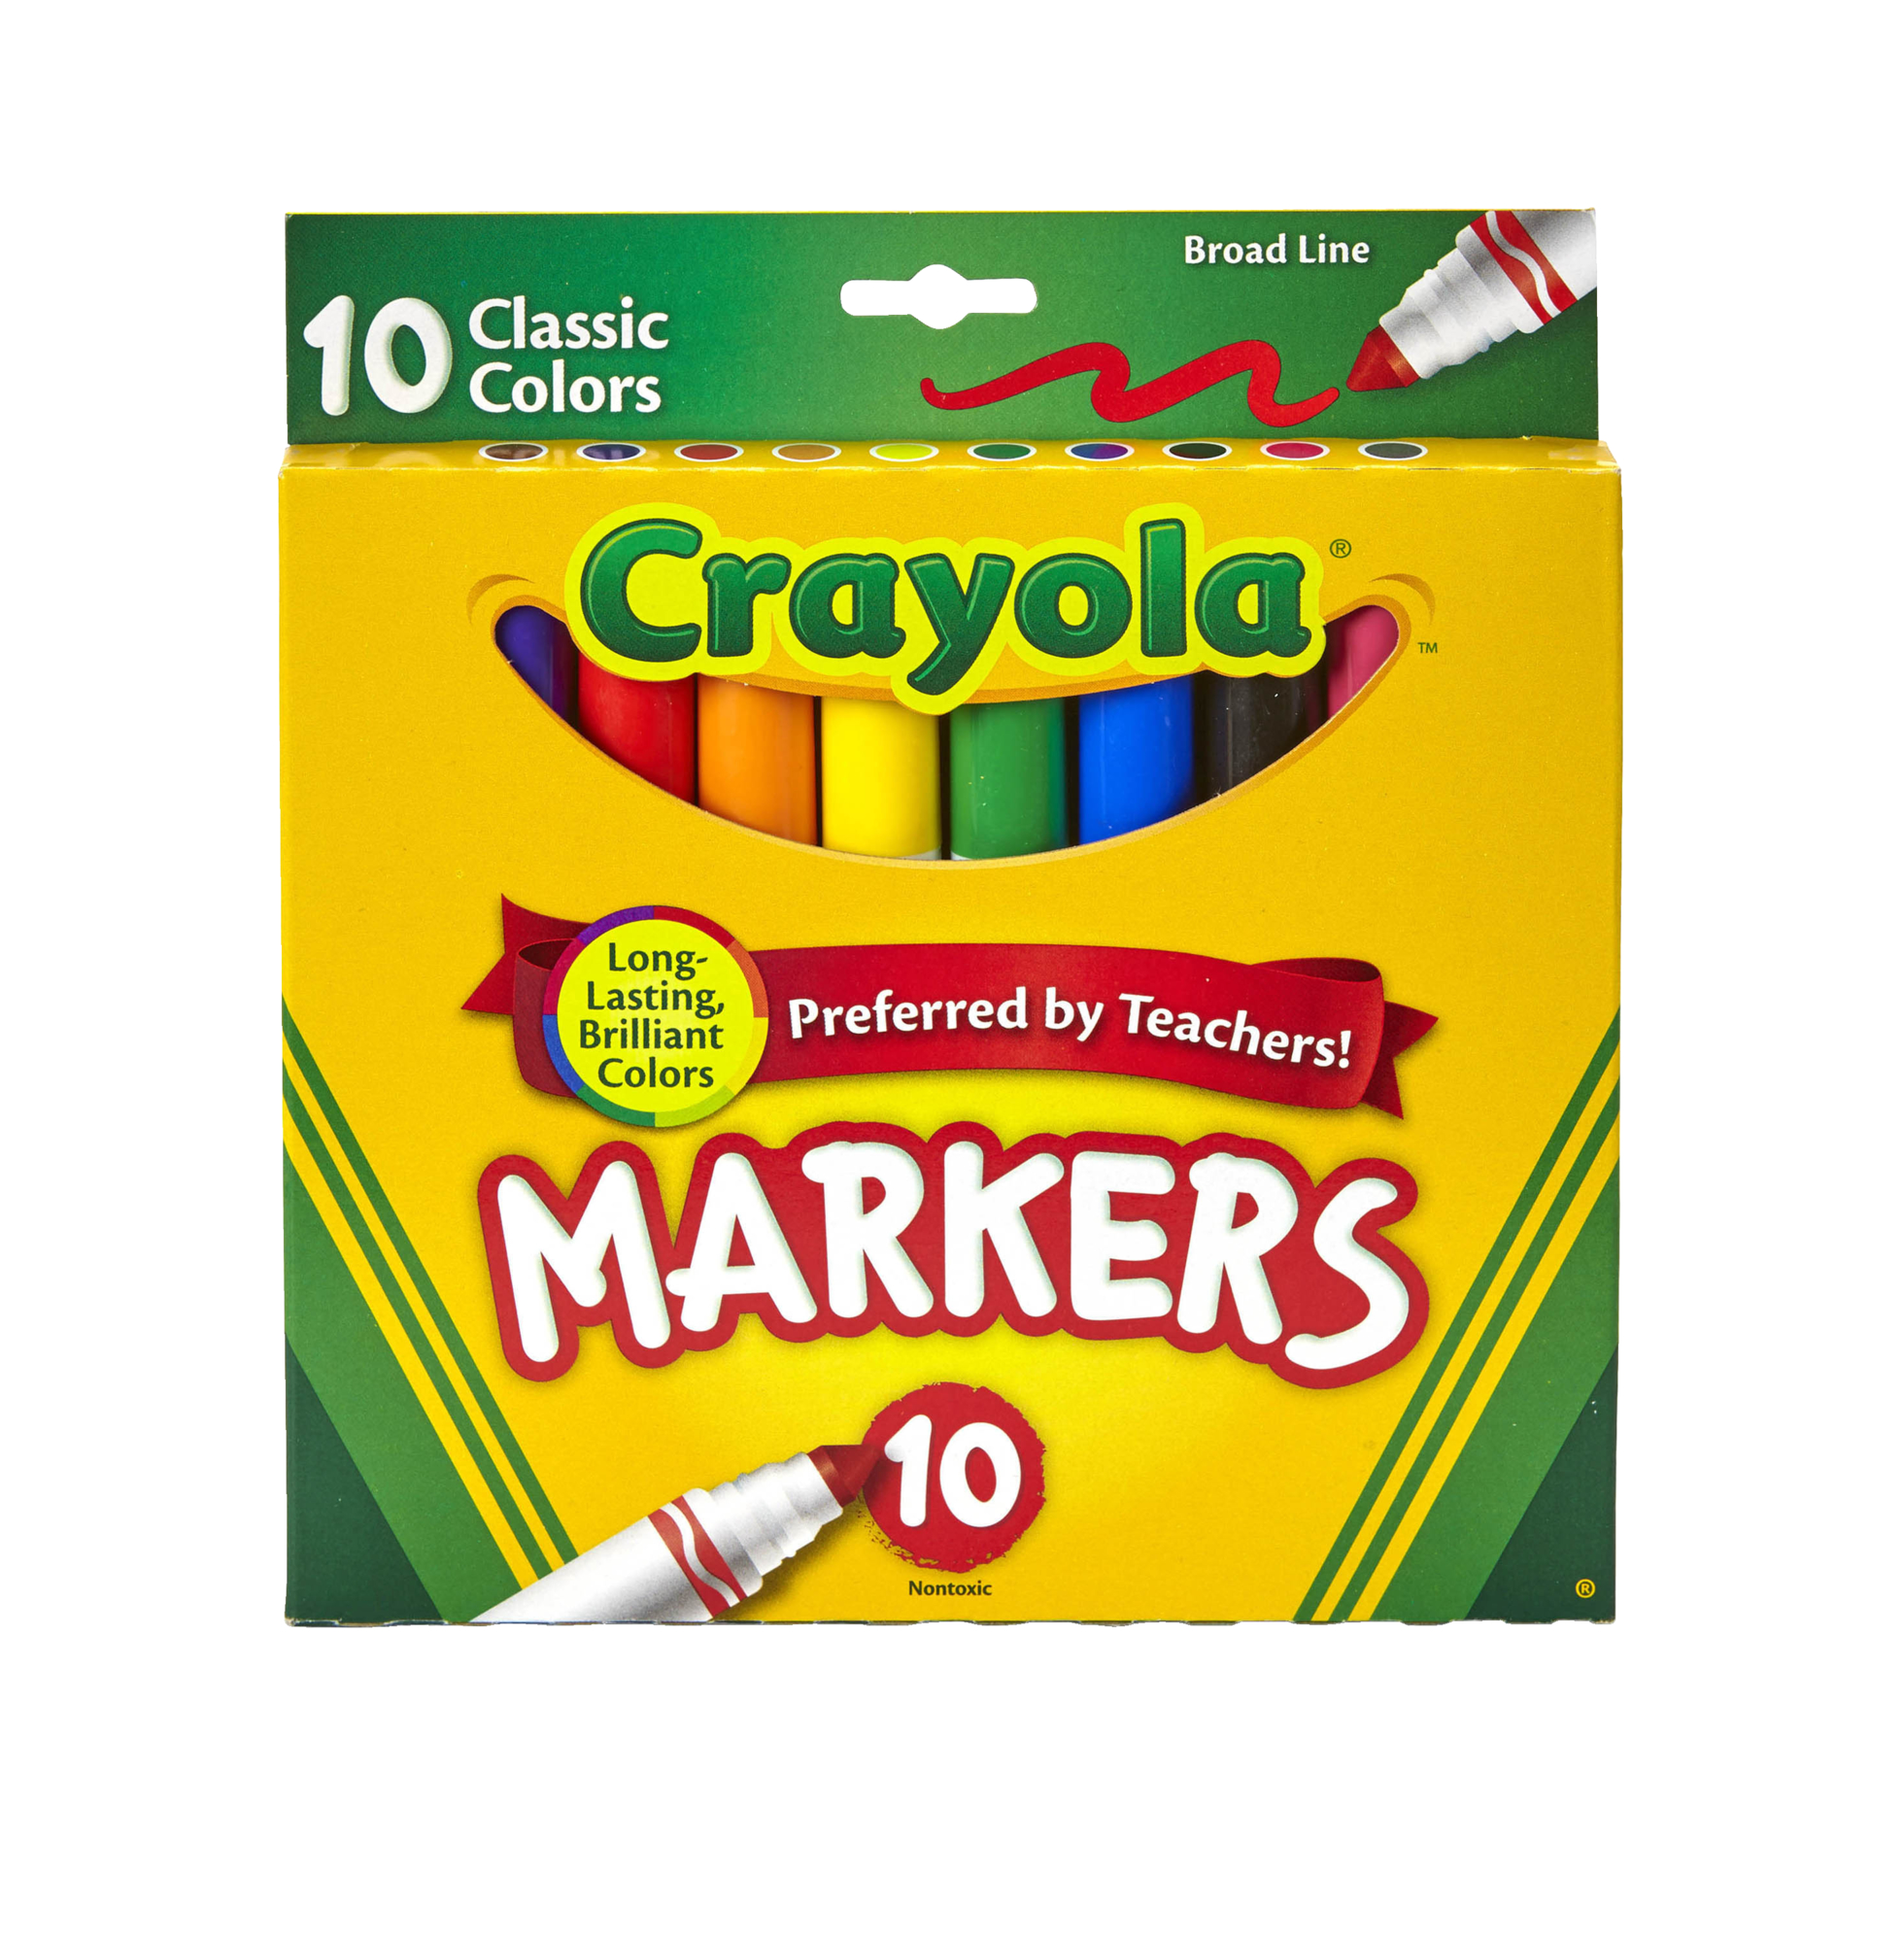 Crayola Original Broad Line Markers, Classic Colors, 10 Count